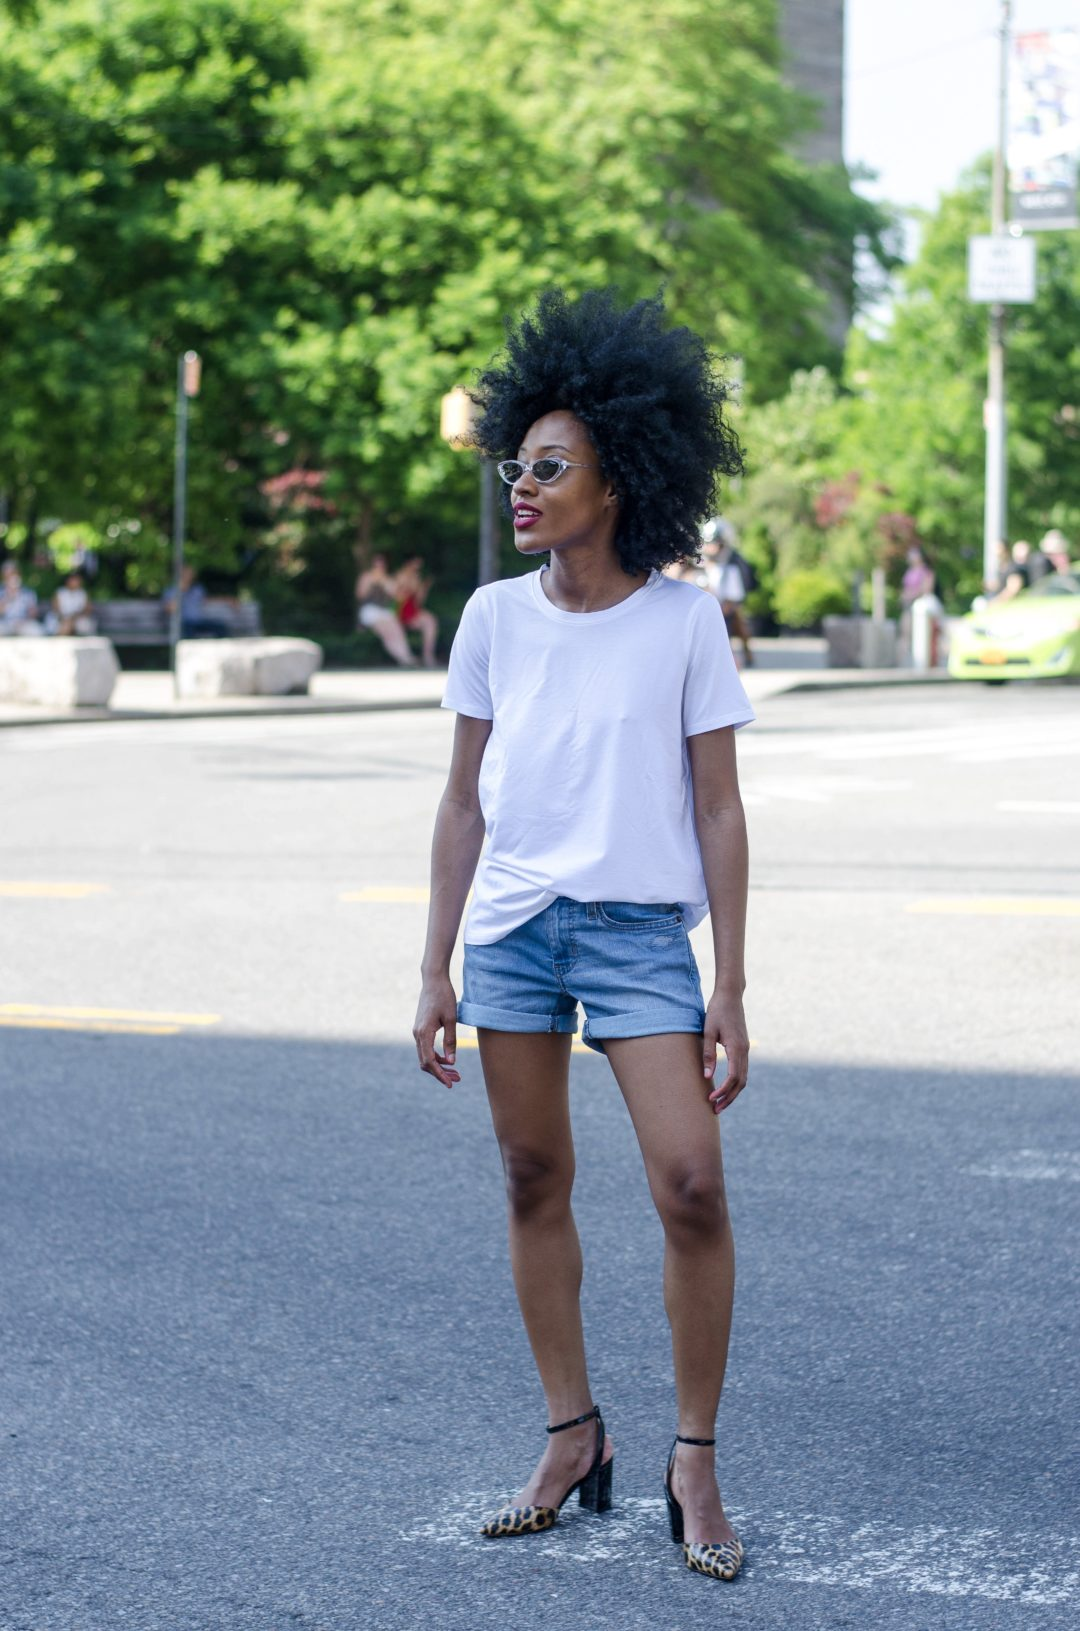 3 Summer Outfits From Macy's Summer Fashion Campaign | In ...